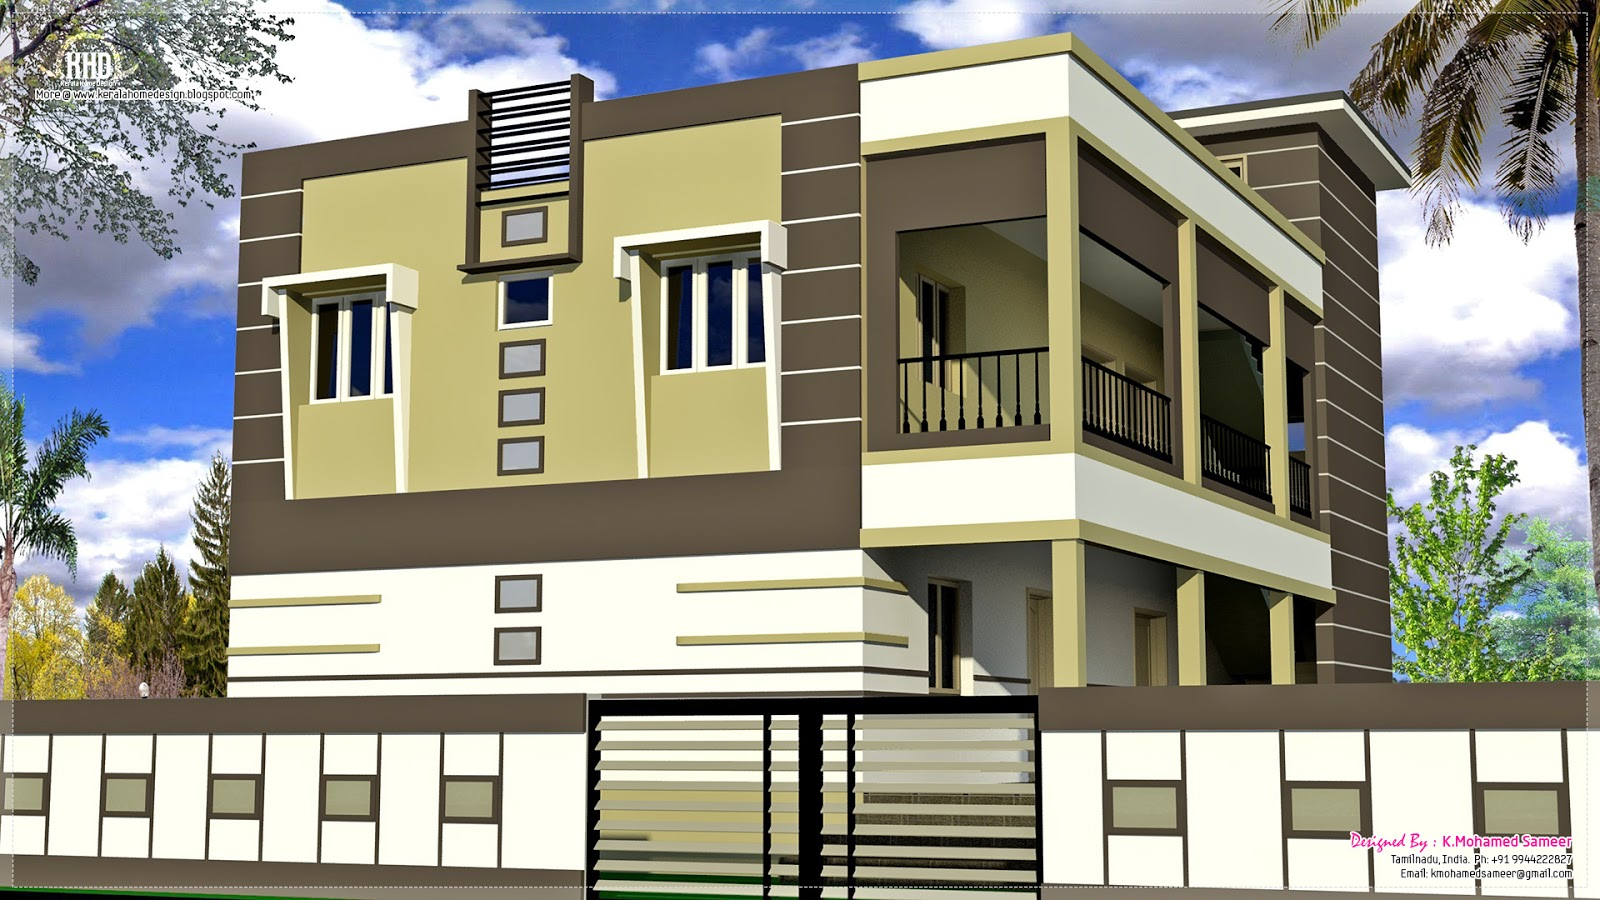 Facilities of this Double floor house